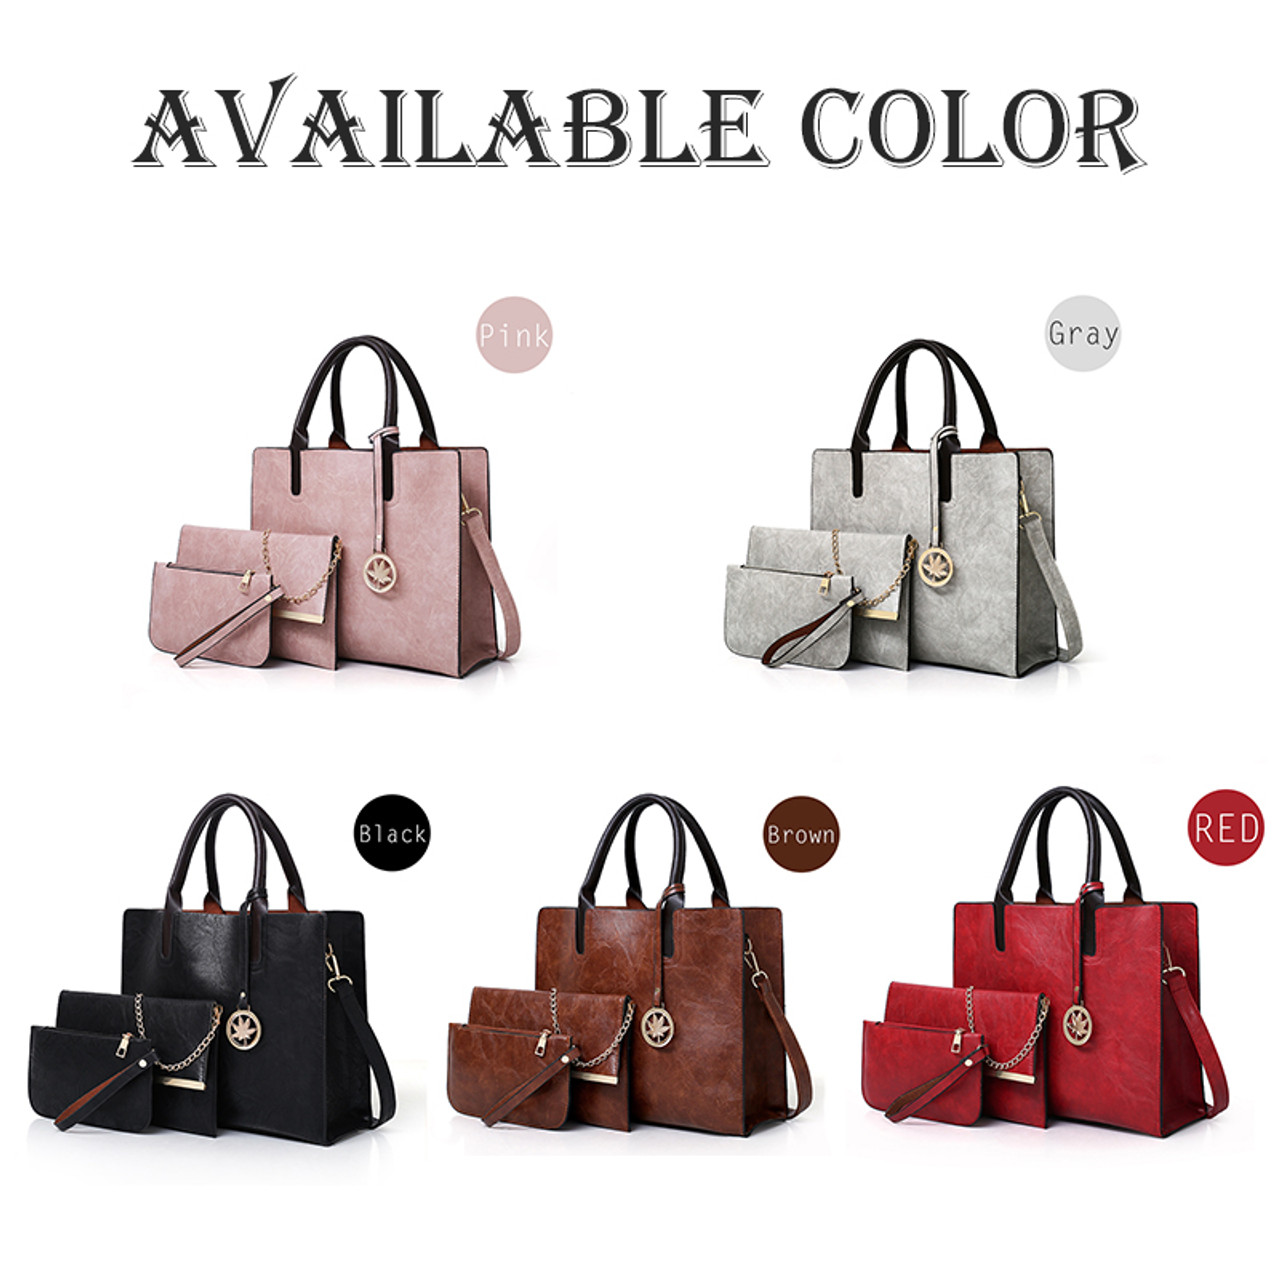 3Pcs Bag Sets Luxury Handbags Women Bags Female Shoulder Bags For Women Handbags Fashion Purses And Famous Brands Tote